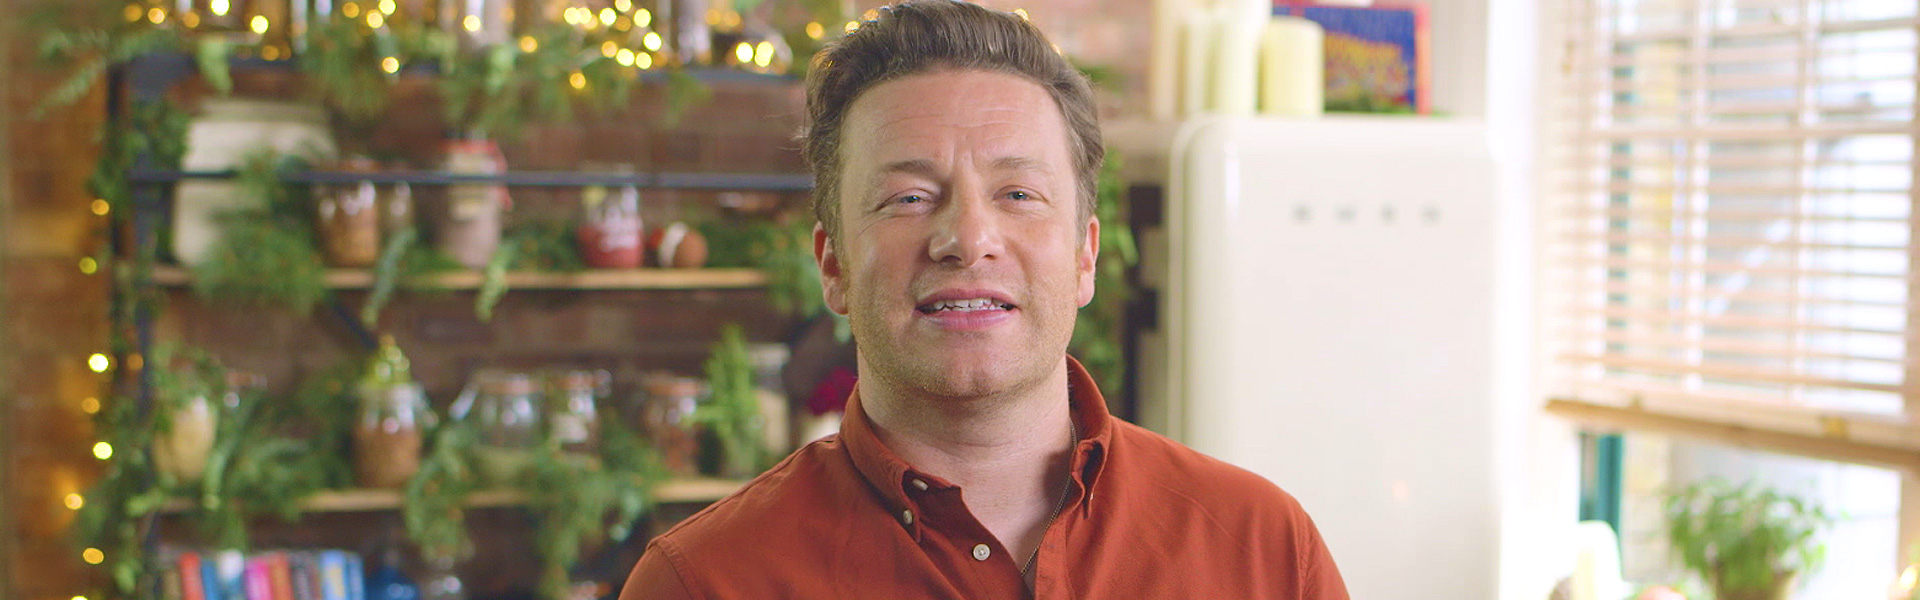 Exclusive Video! Jamie Oliver Introduces Jamie Oliver's Christmas ...